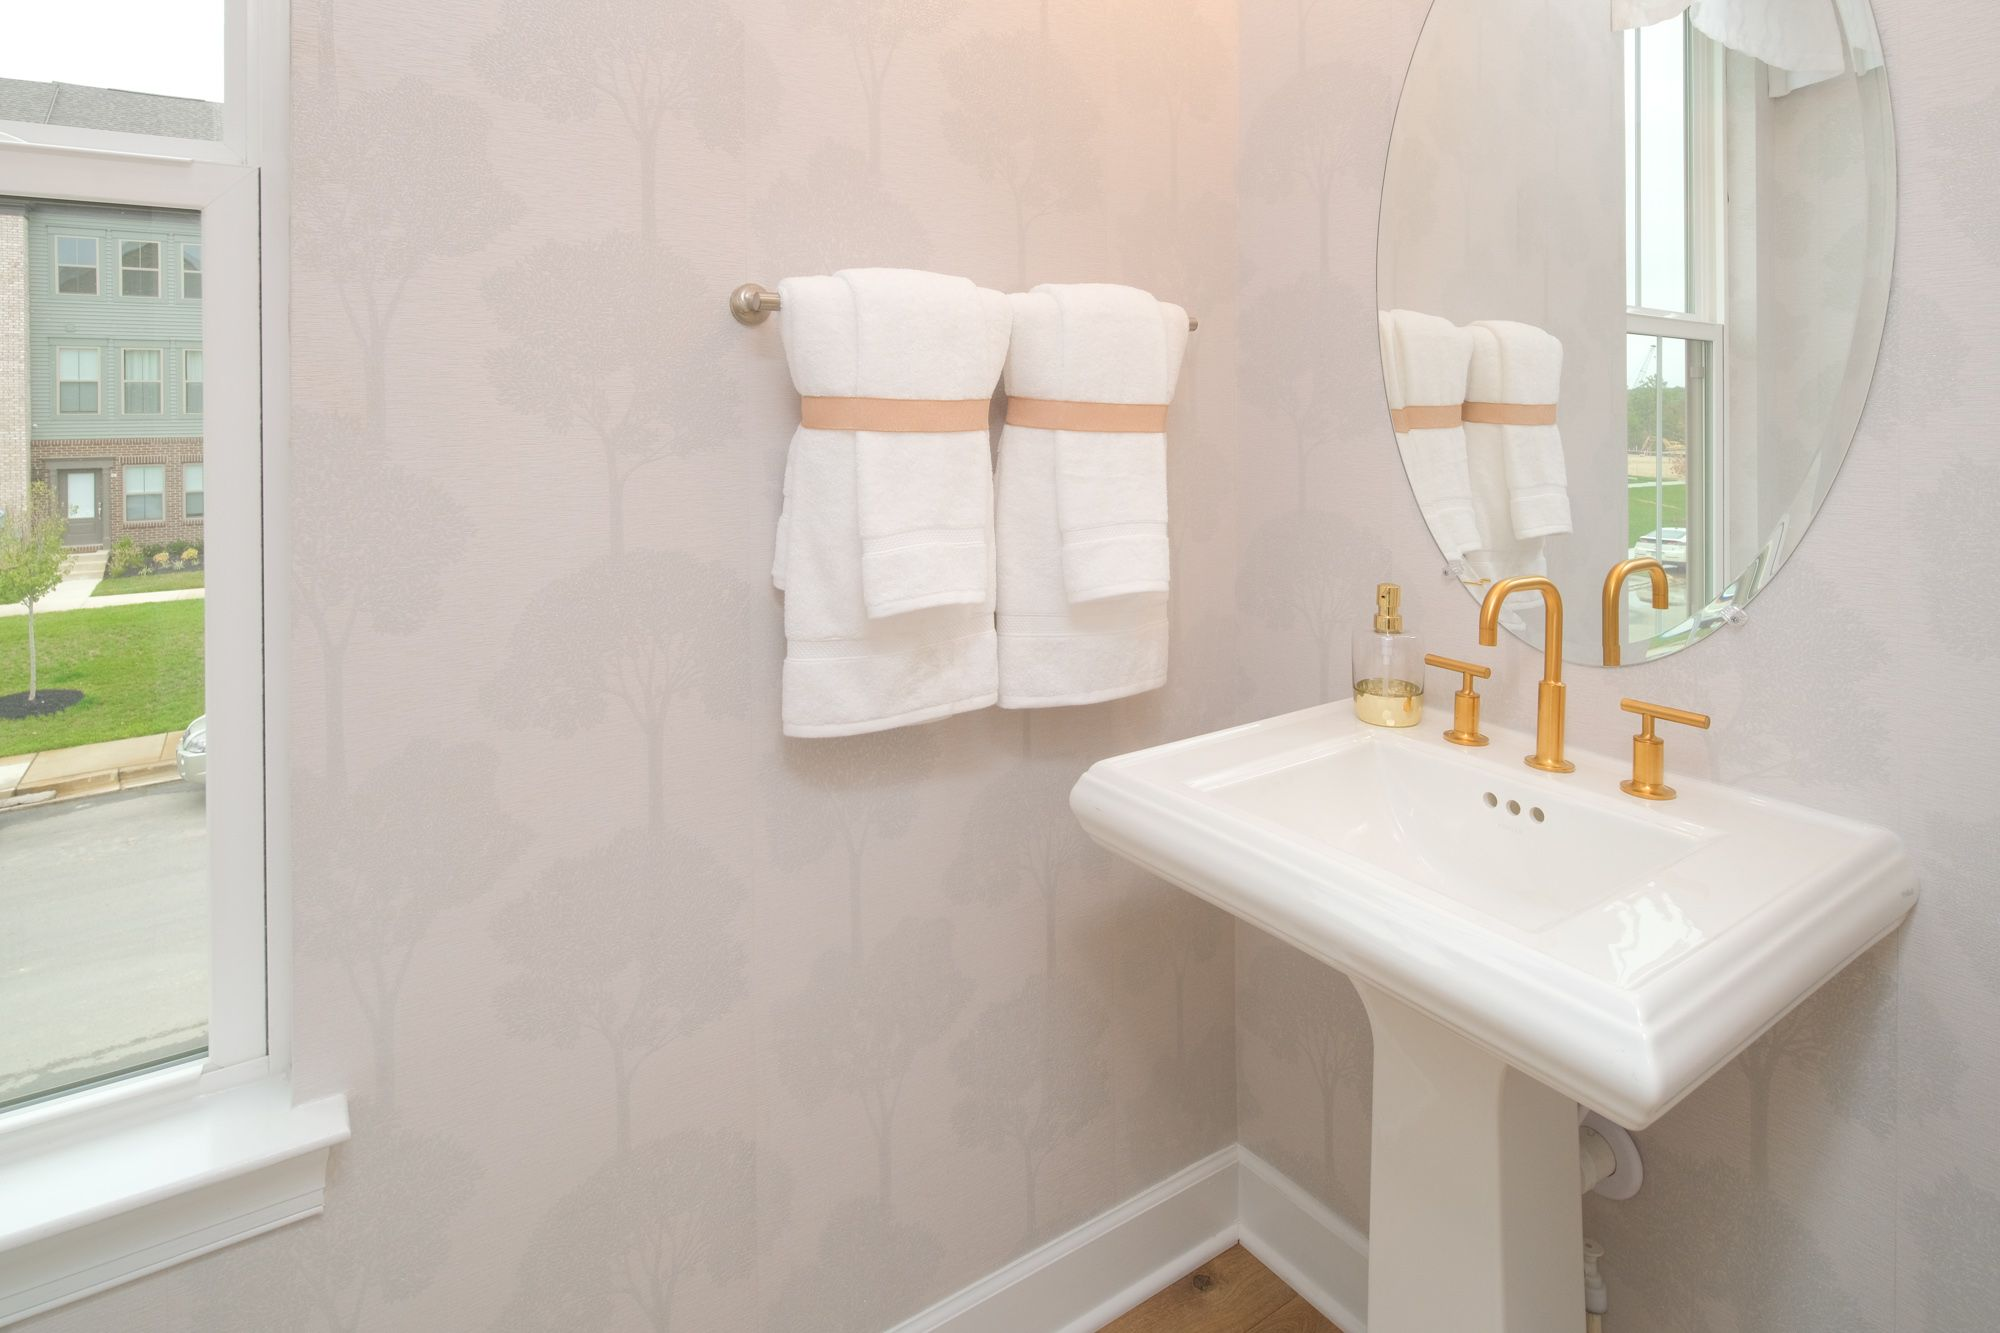 Bathroom featured in the Jenkins By Stanley Martin Homes in Washington, MD